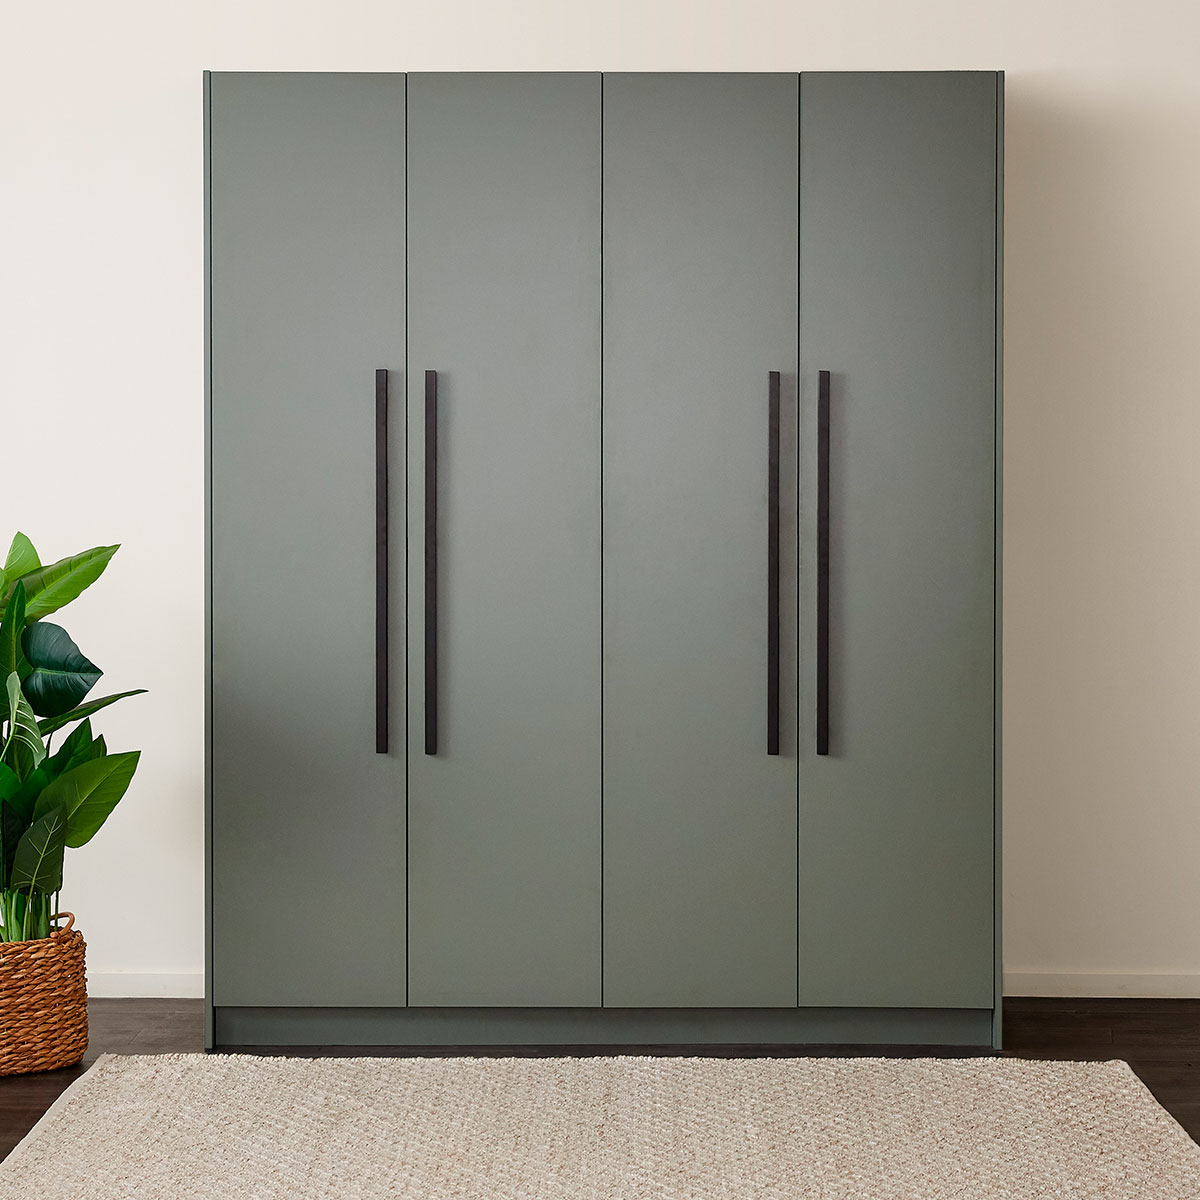 Luxury hinged wardrobe